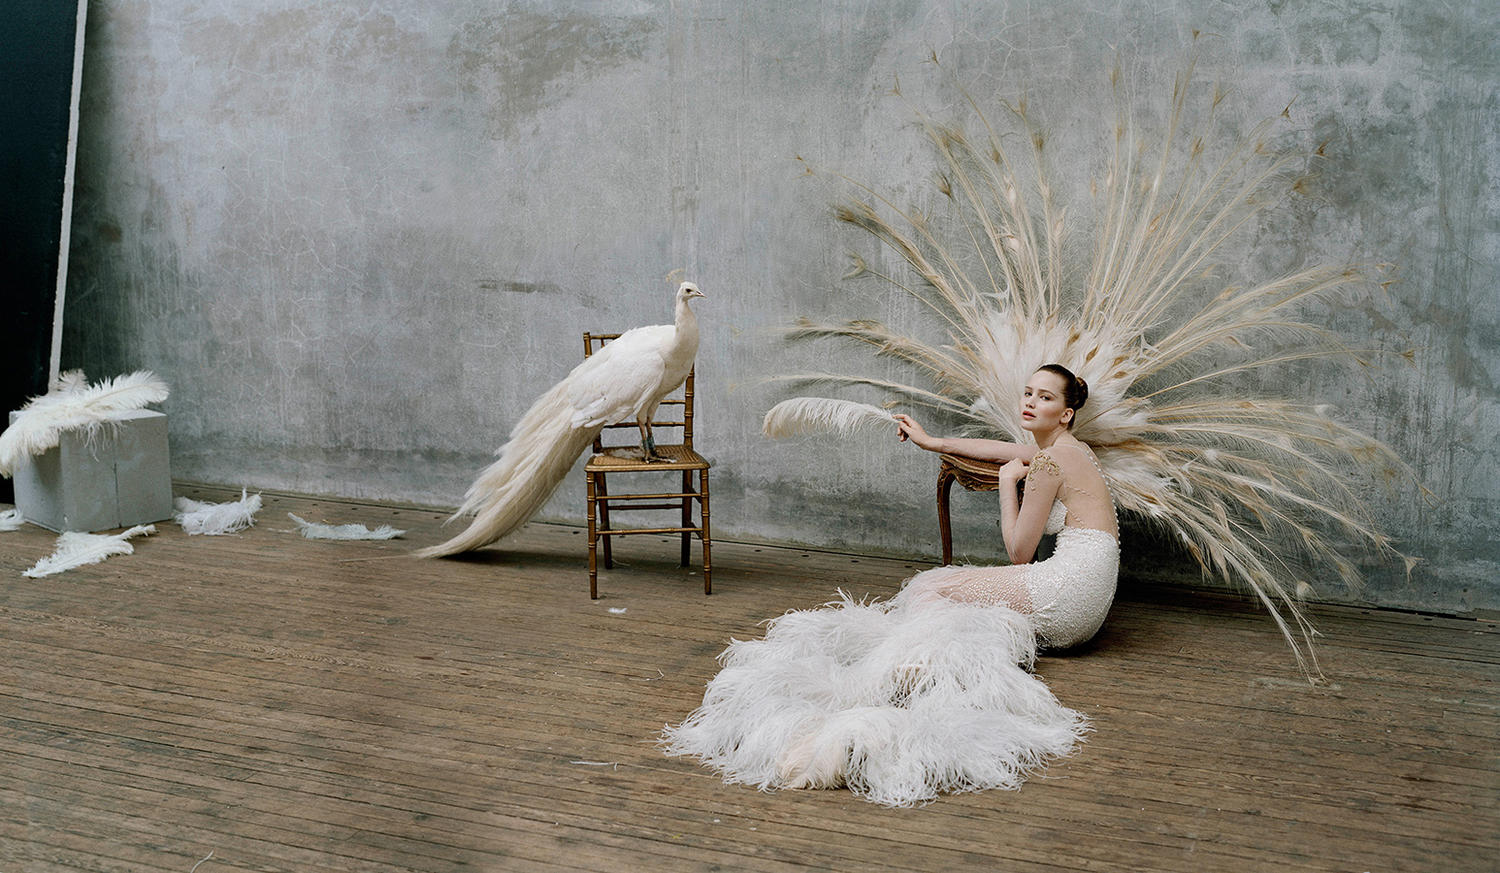 Conceptual-and-Fashion-Photography-by-Tim-Walker-1.jpg